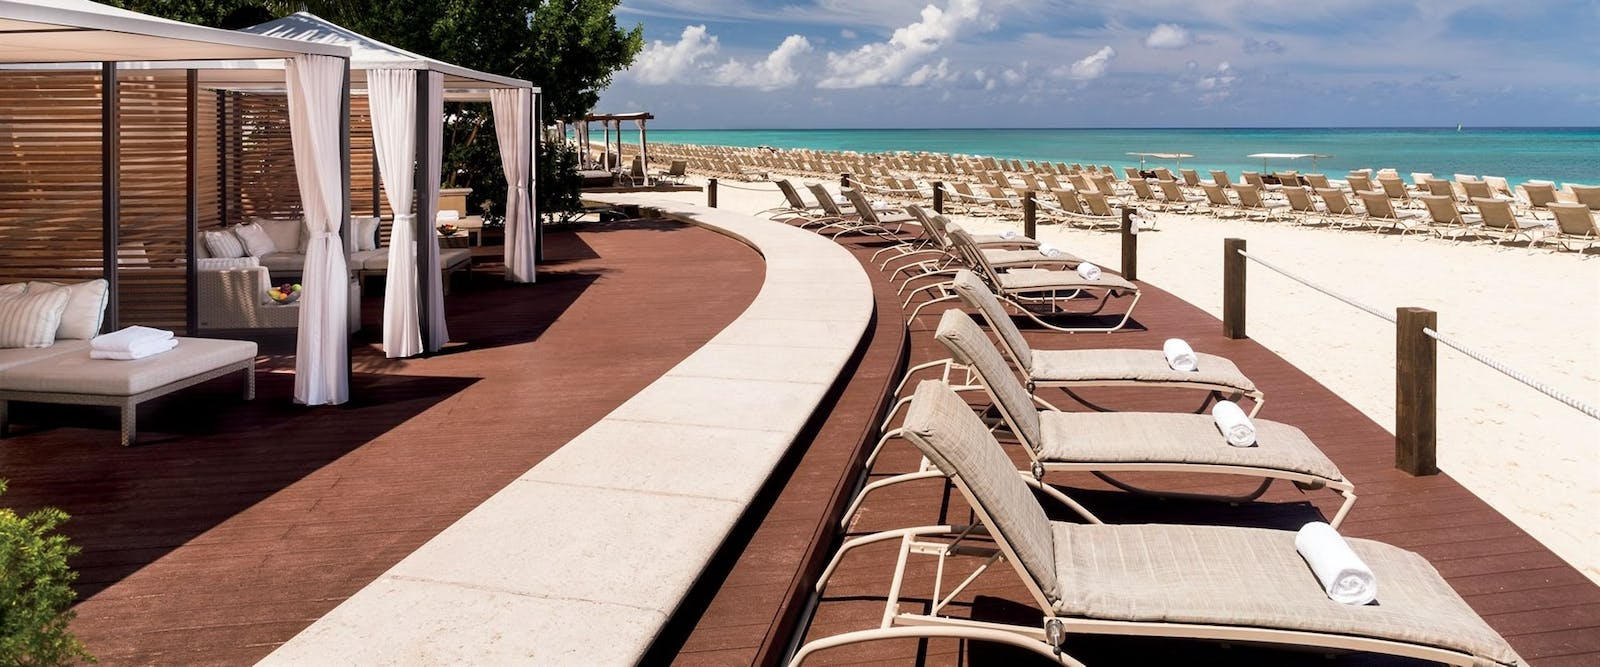 Beach Area at The Ritz-Carlton, Grand Cayman, Cayman Islands